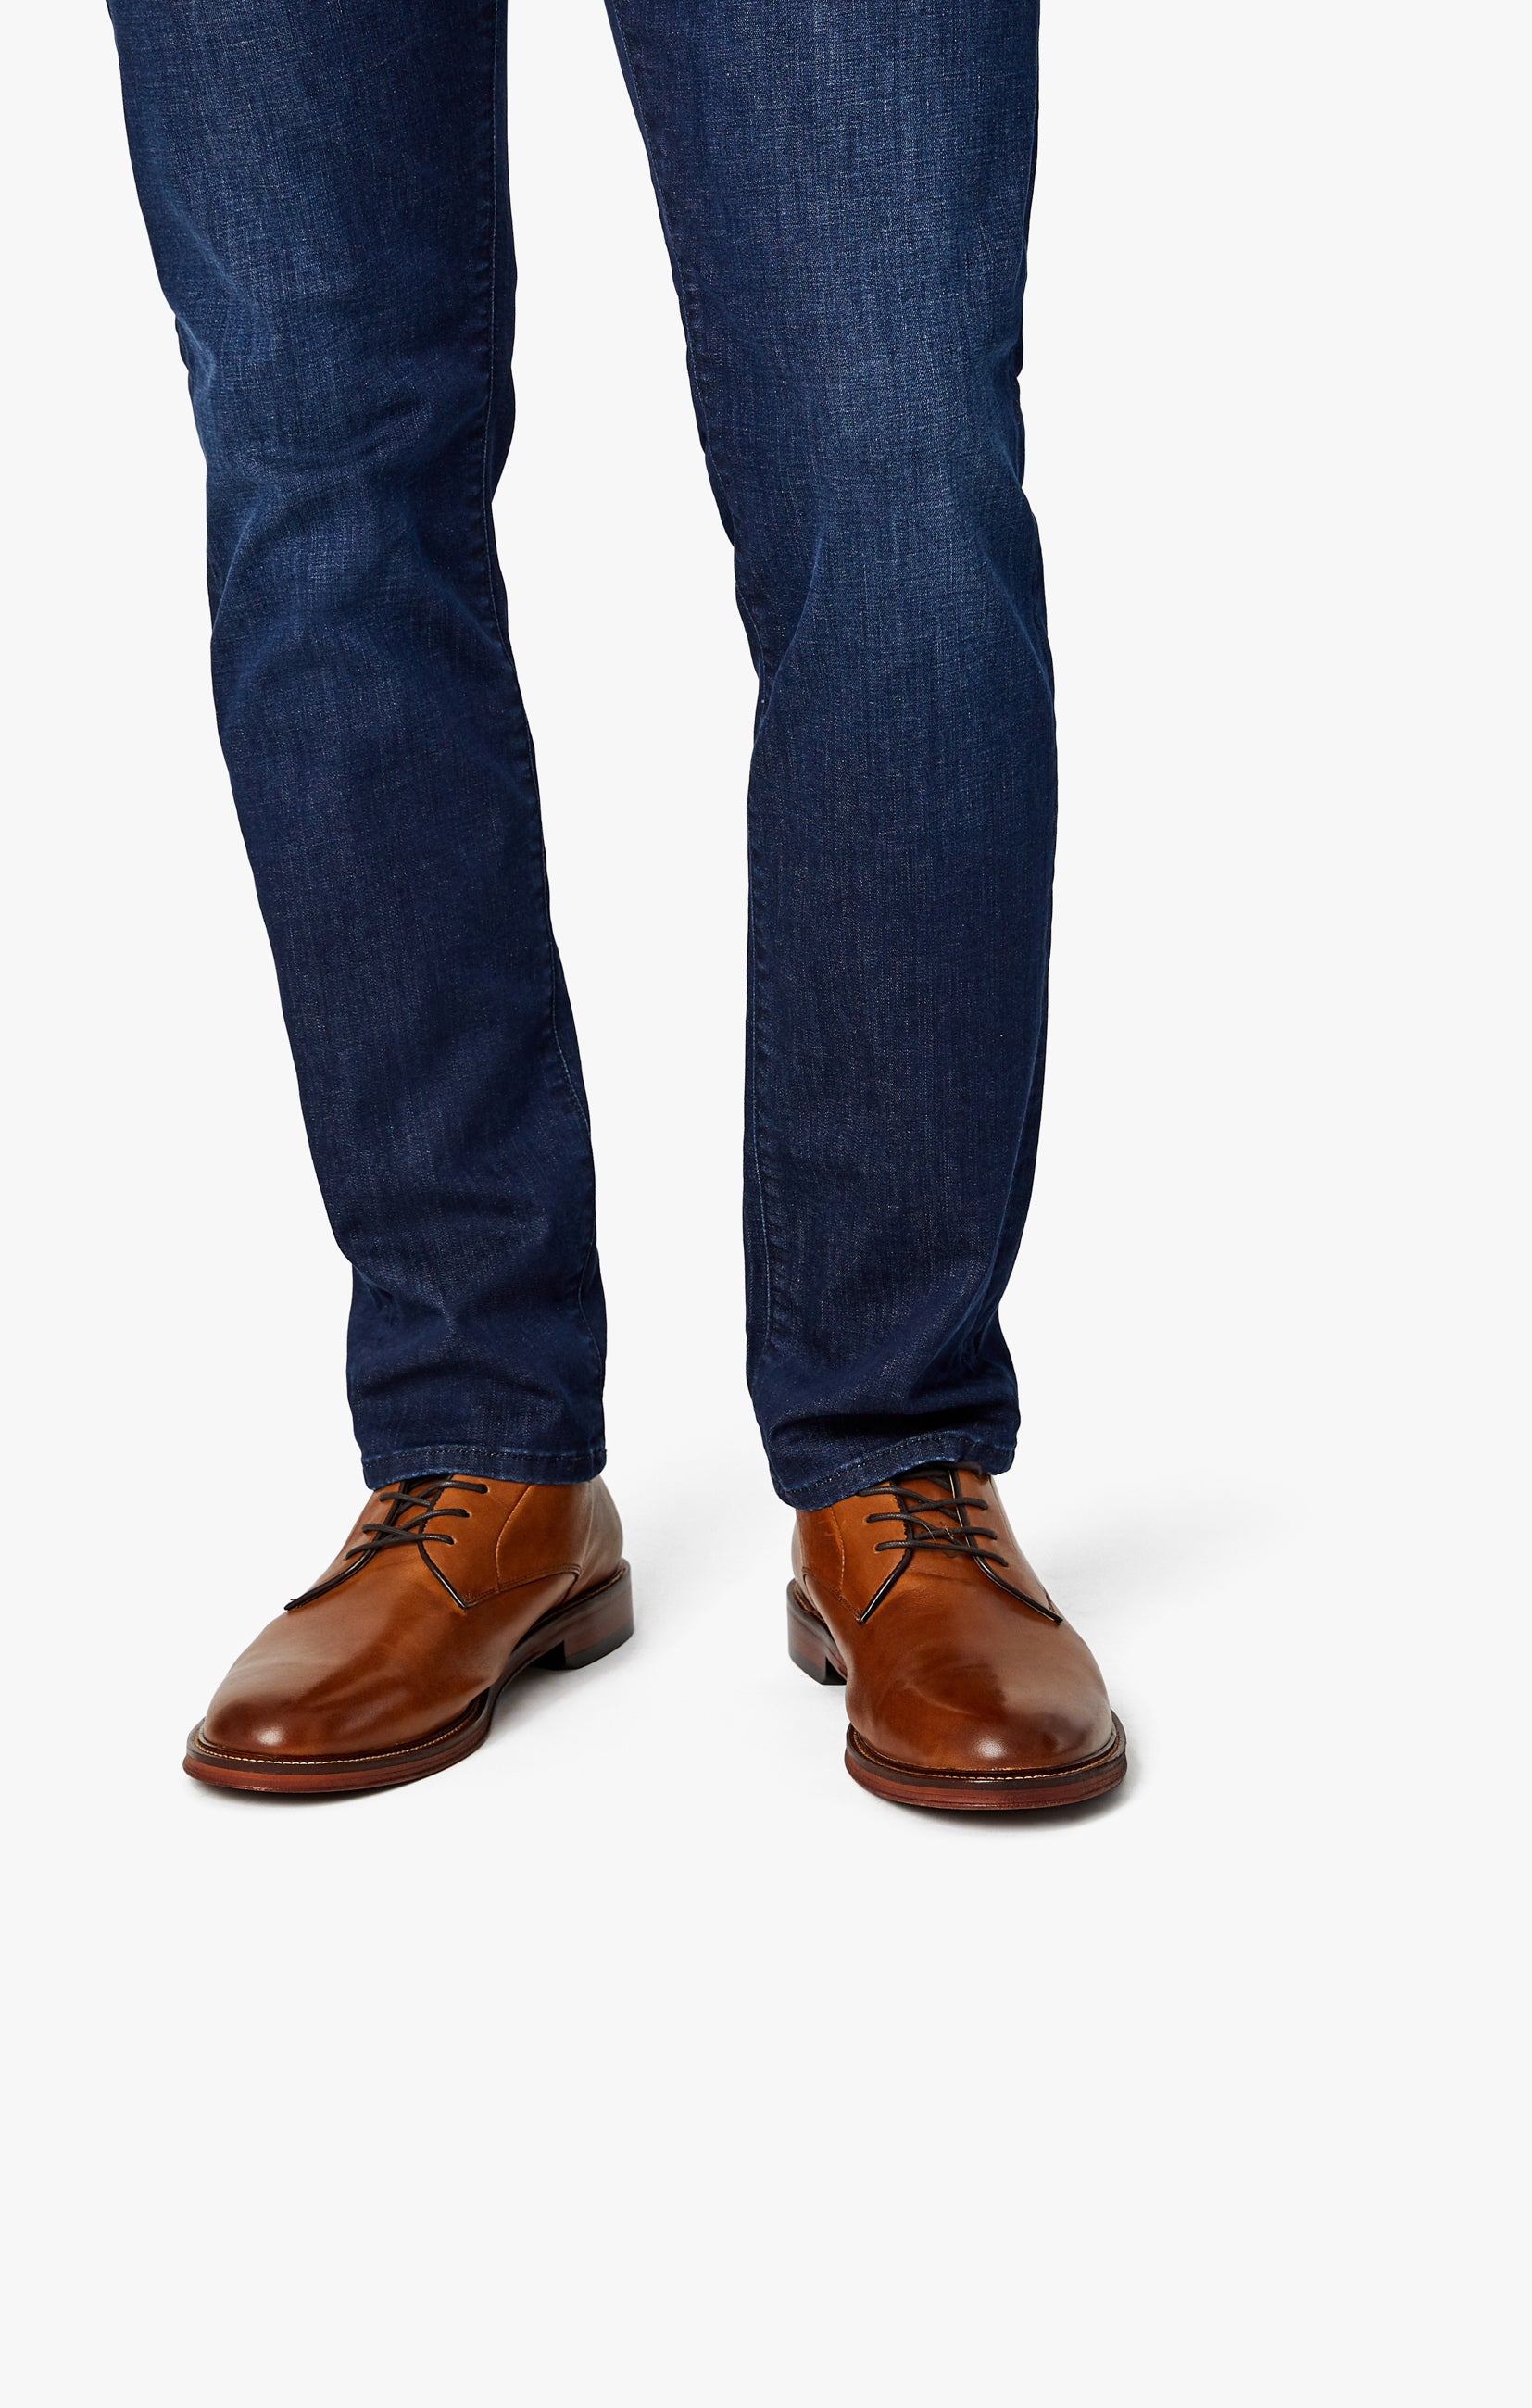 Courage Straight Leg Jeans in Deep Blue Heritage Image 5